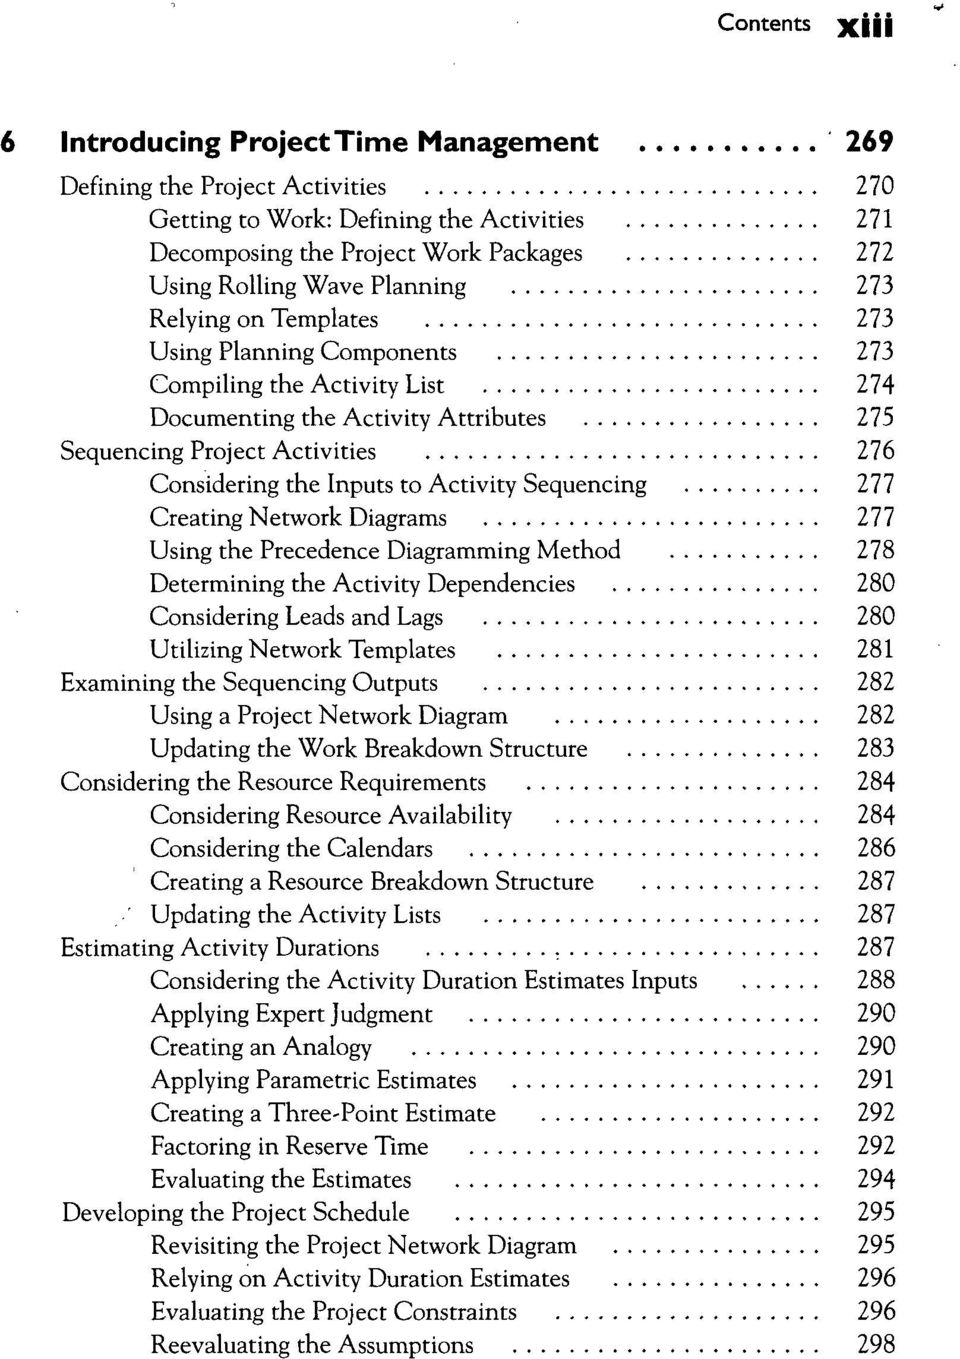 Activity Sequencing 277 Creating Network Diagrams 277 Using the Precedence Diagramming Method 278 Determining the Activity Dependencies 280 Considering Leads and Lags 280 Utilizing Network Templates